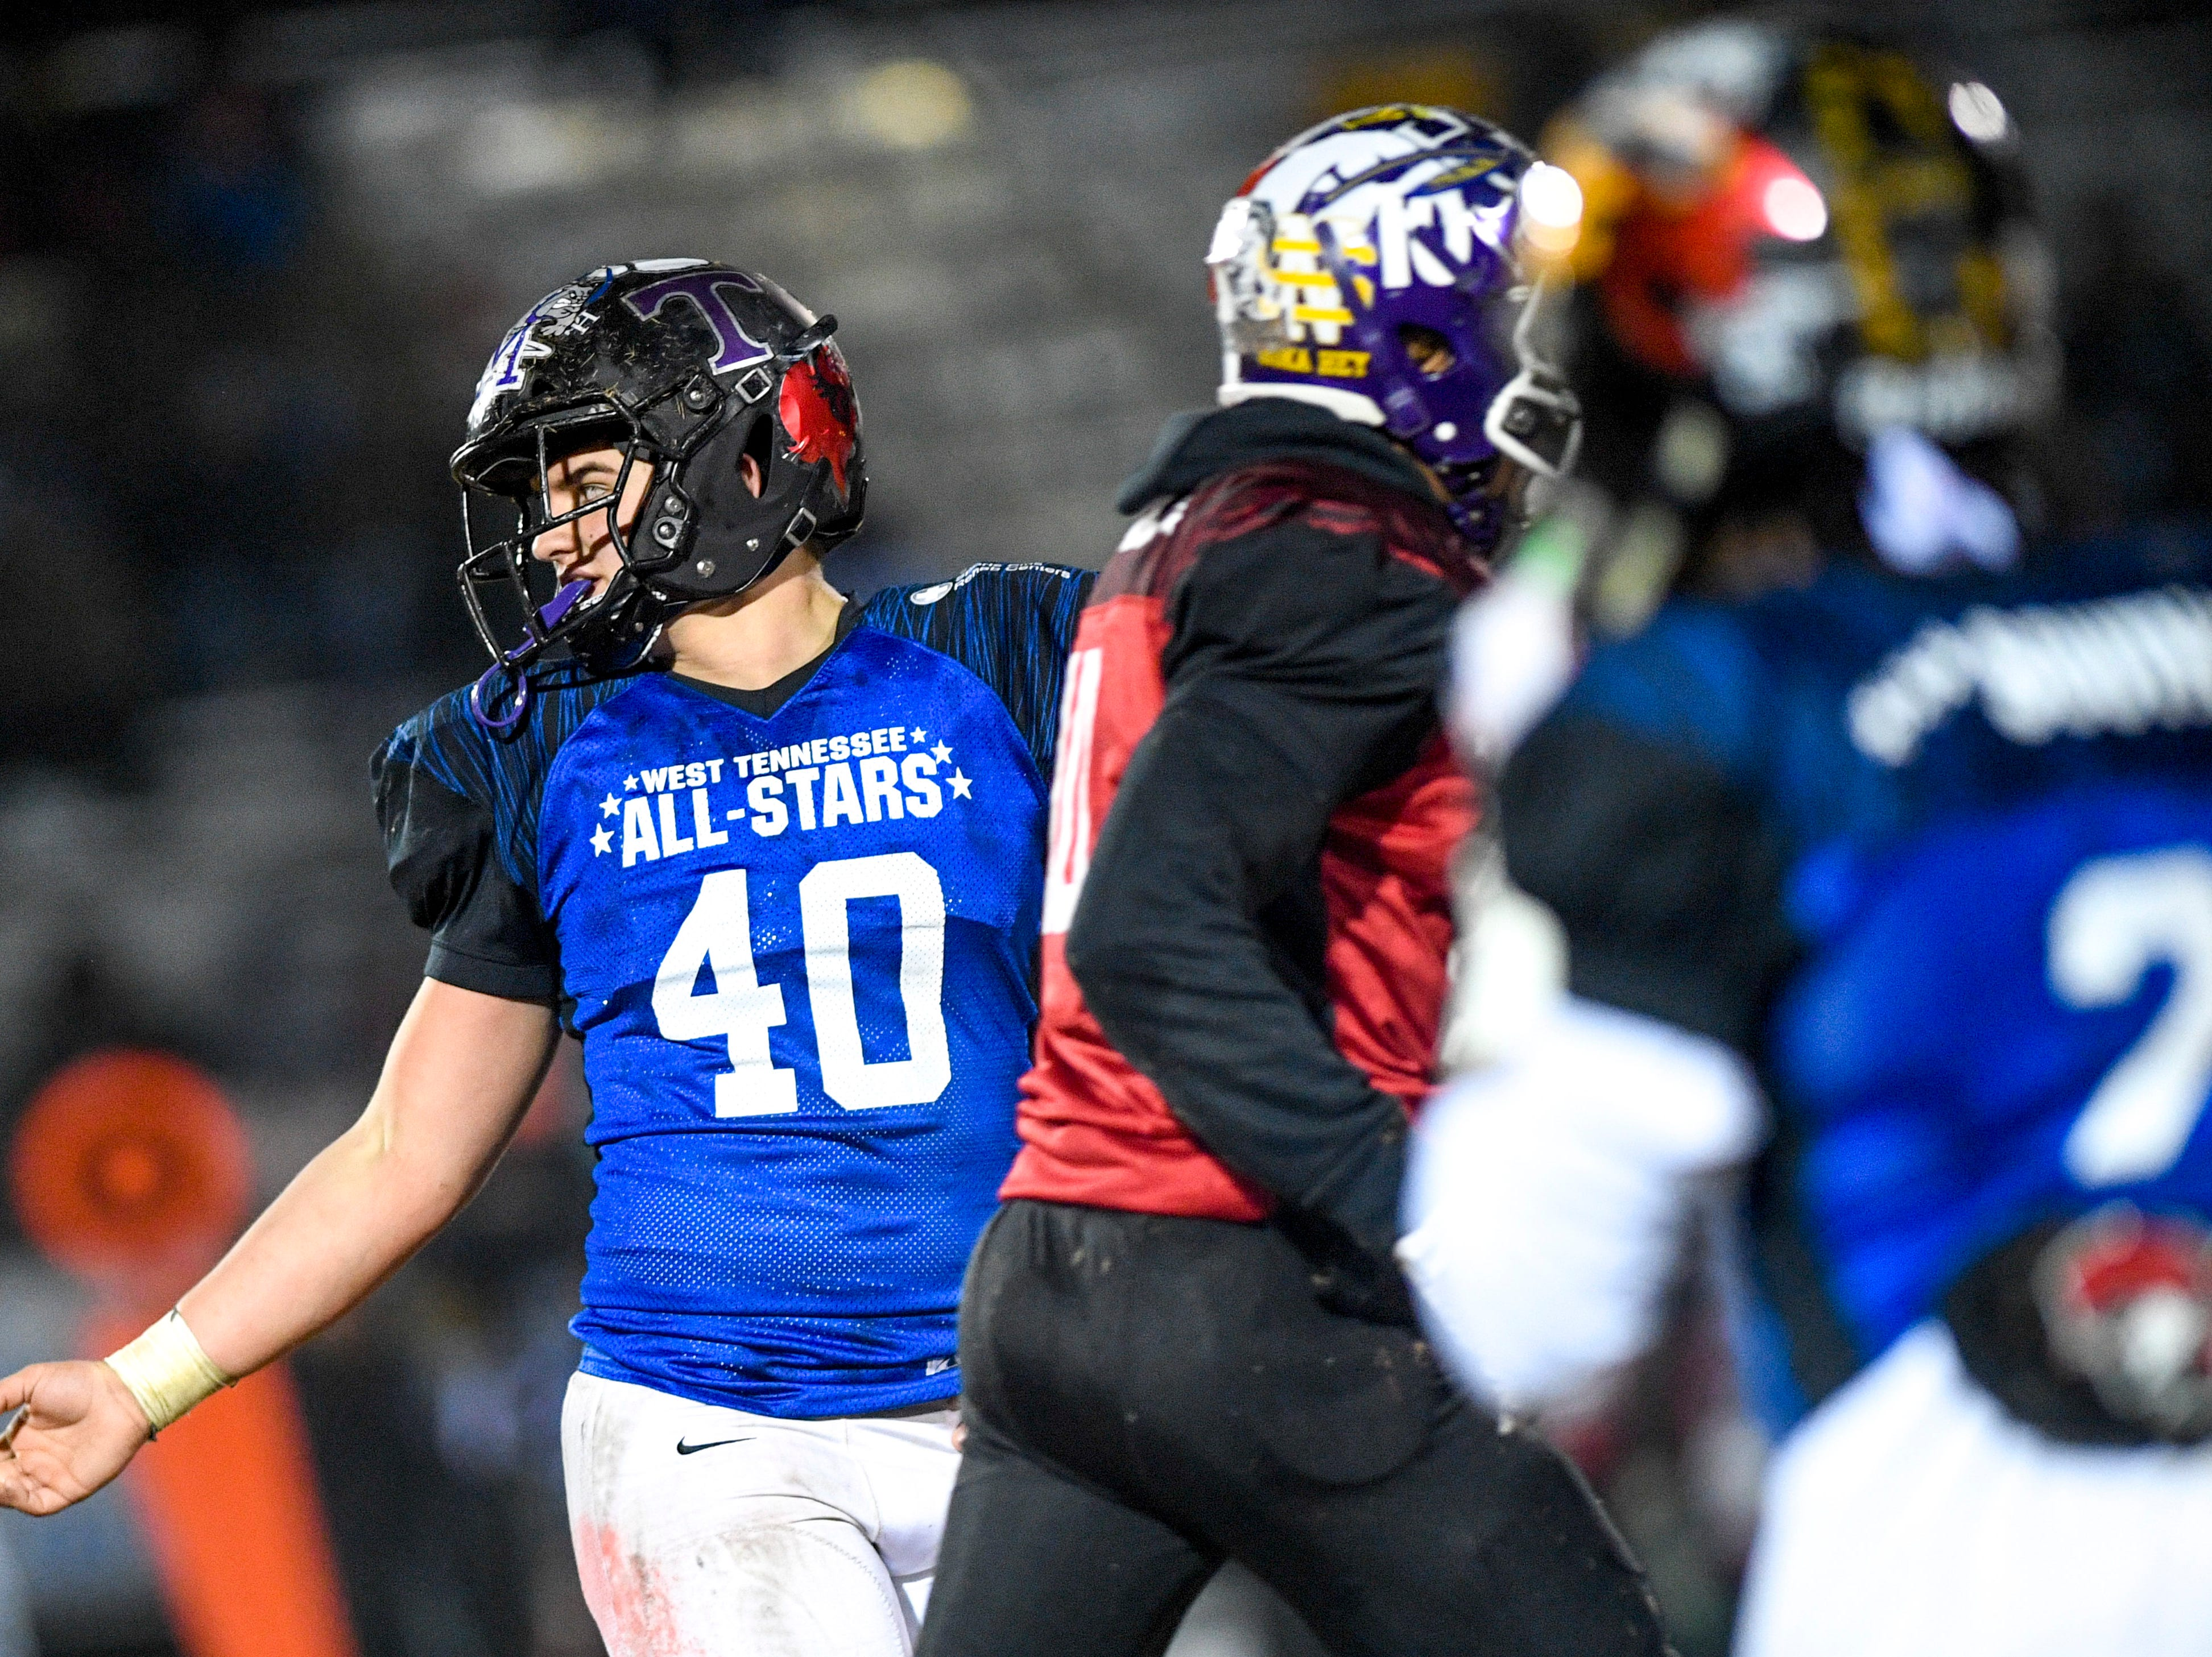 TCA's Addison Coleman (40) looks back to jokingly taunt another player during the West Tennessee All-Star football game at University School of Jackson in Jackson, Tenn., on Friday, Dec. 7, 2018.